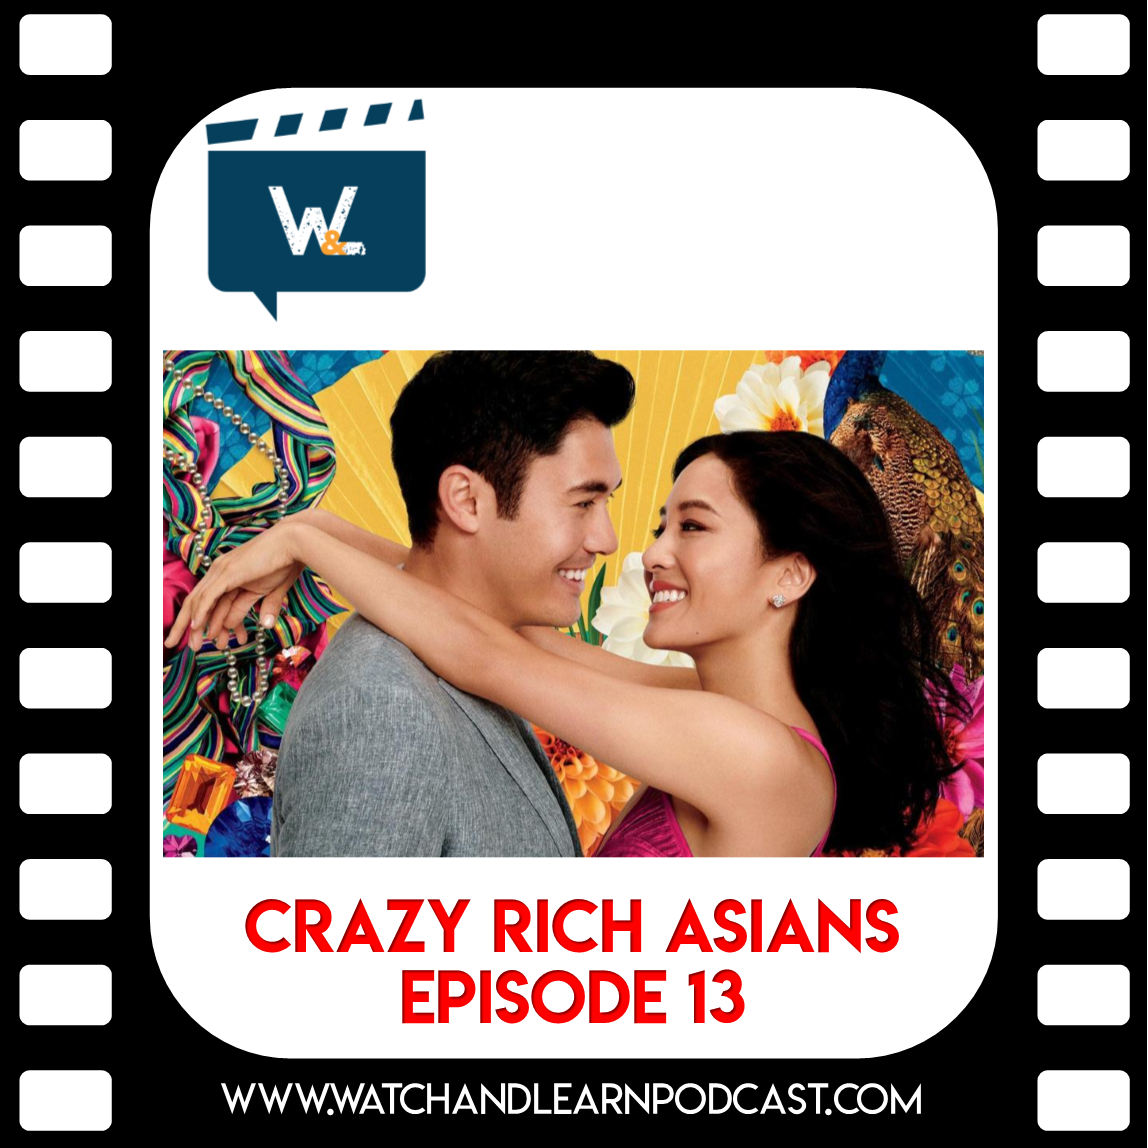 Crazy Rich Asians Podcast